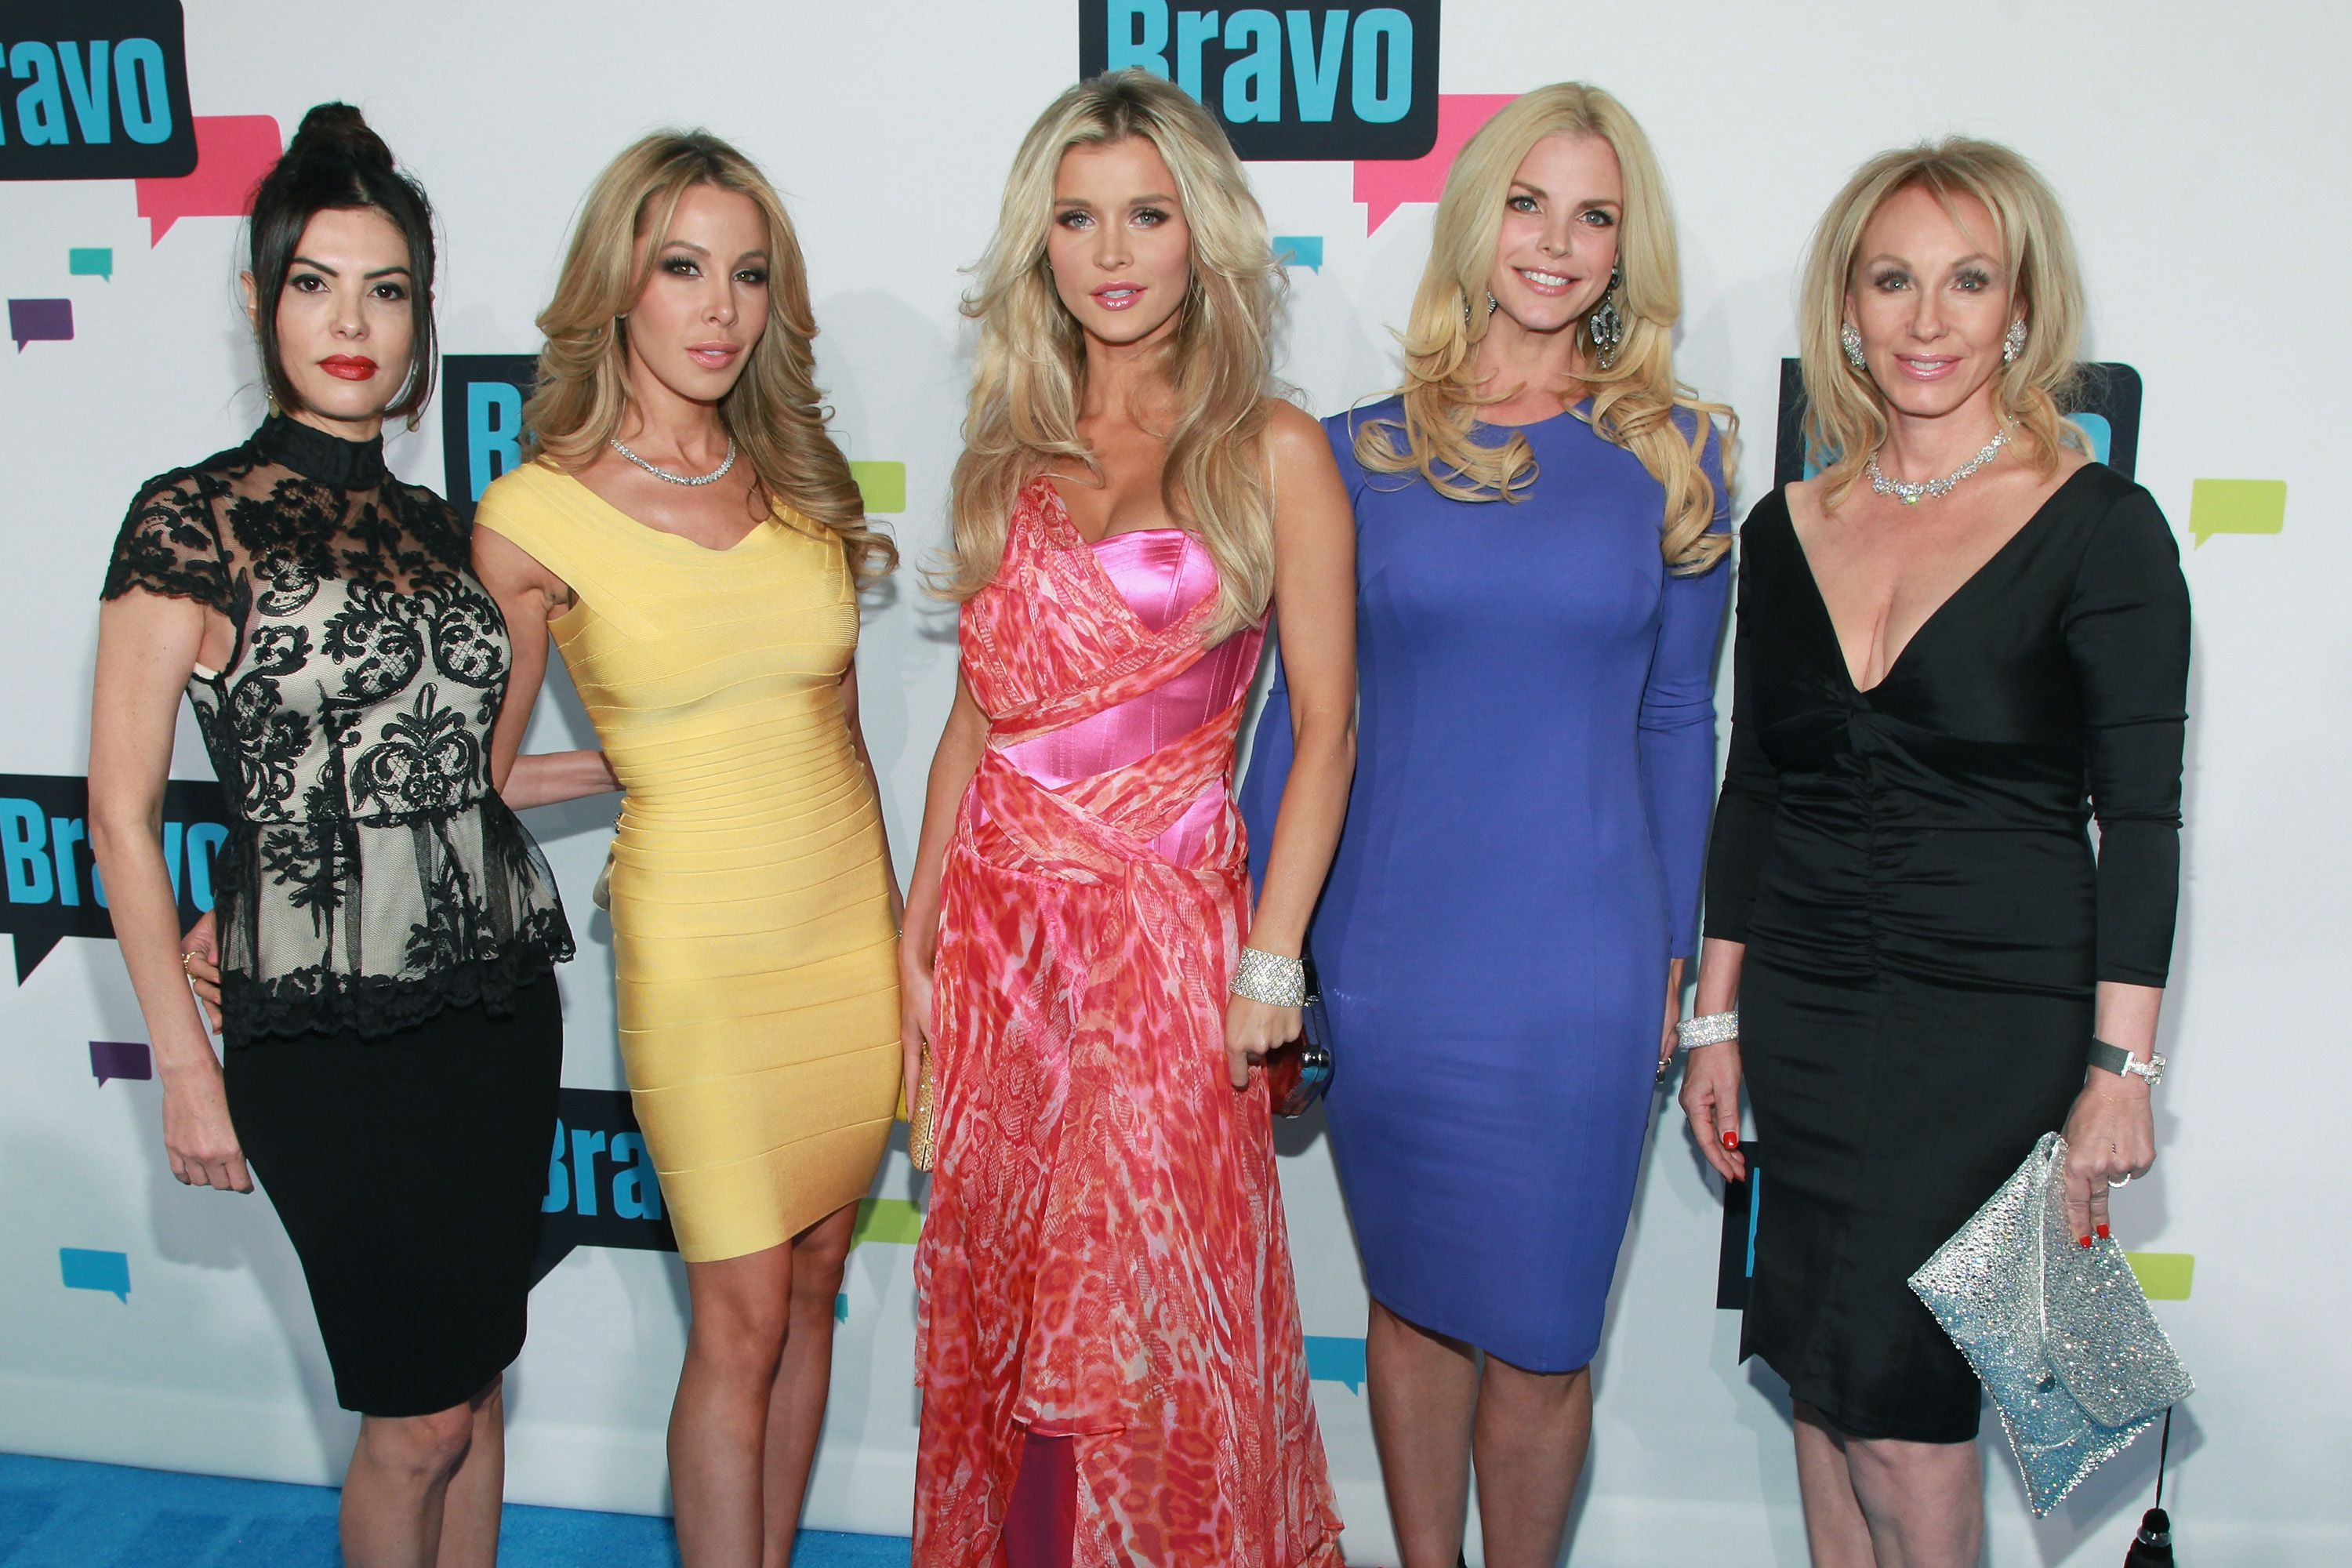 A group of women in different color dresses smiling at the camera.